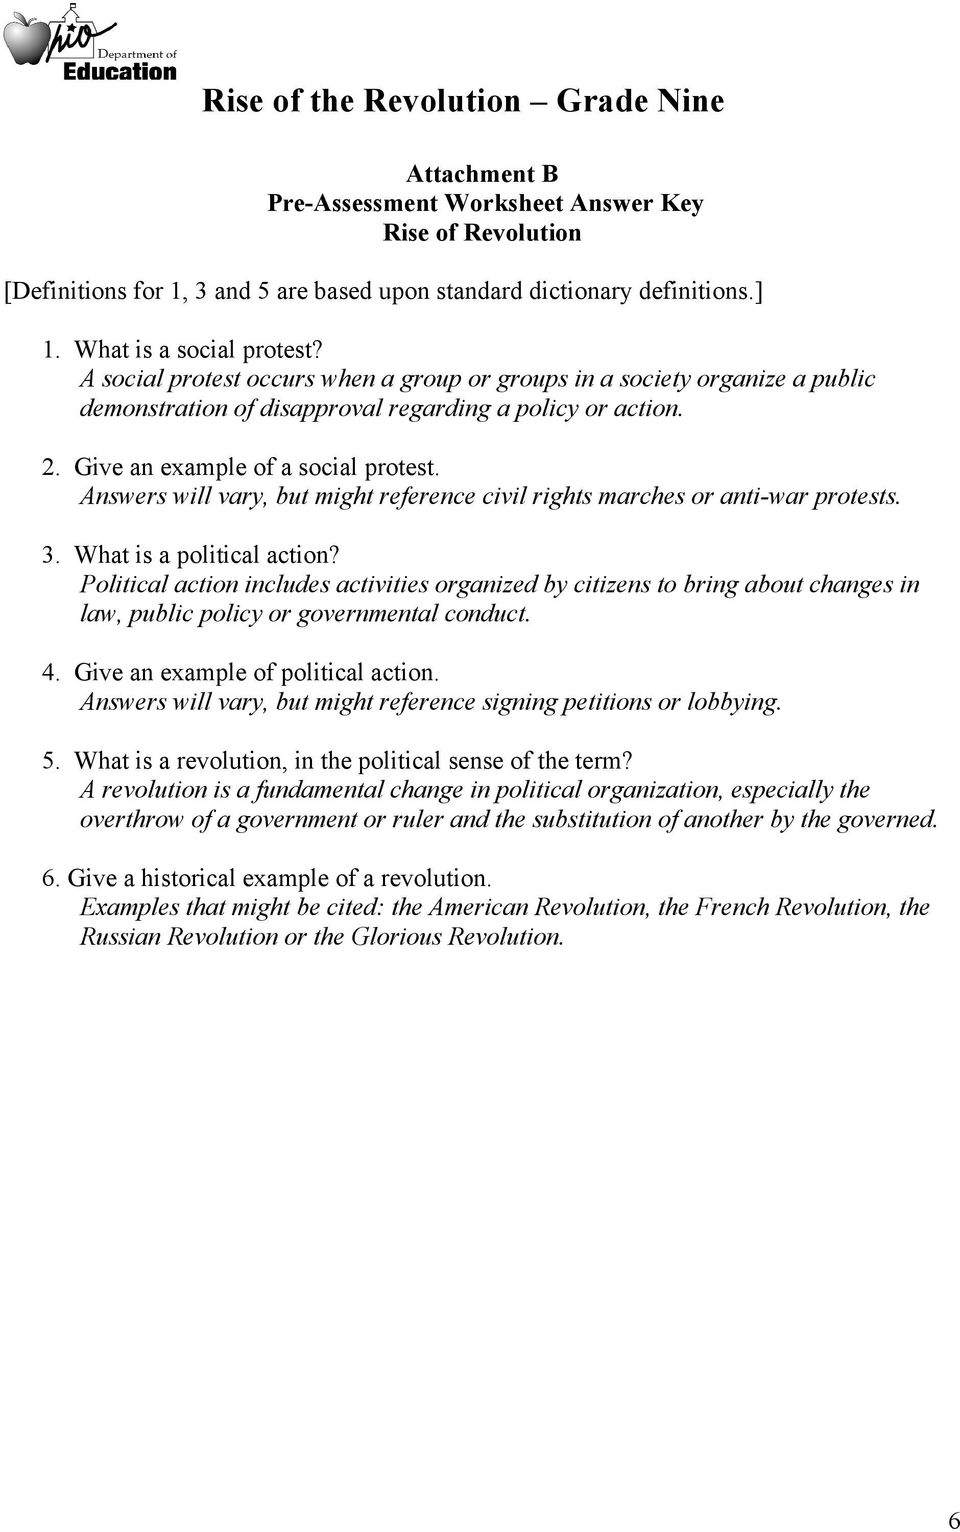 french revolution worksheets Termolak – French Revolution Worksheets